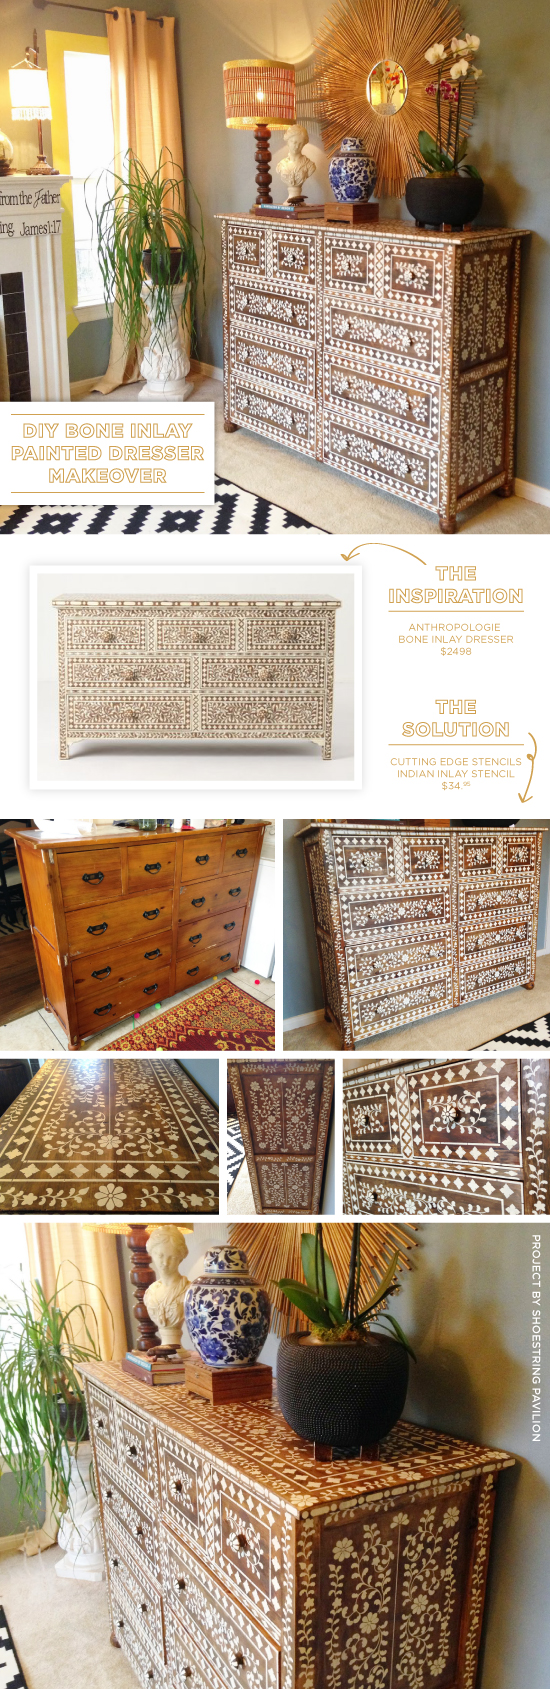 Cutting Edge Stencils shares a DIY Anthropogolie inspired bone inlay stenciled dresser using the Indian Inlay Stencil Kit. http://www.cuttingedgestencils.com/indian-inlay-stencil-furniture.html